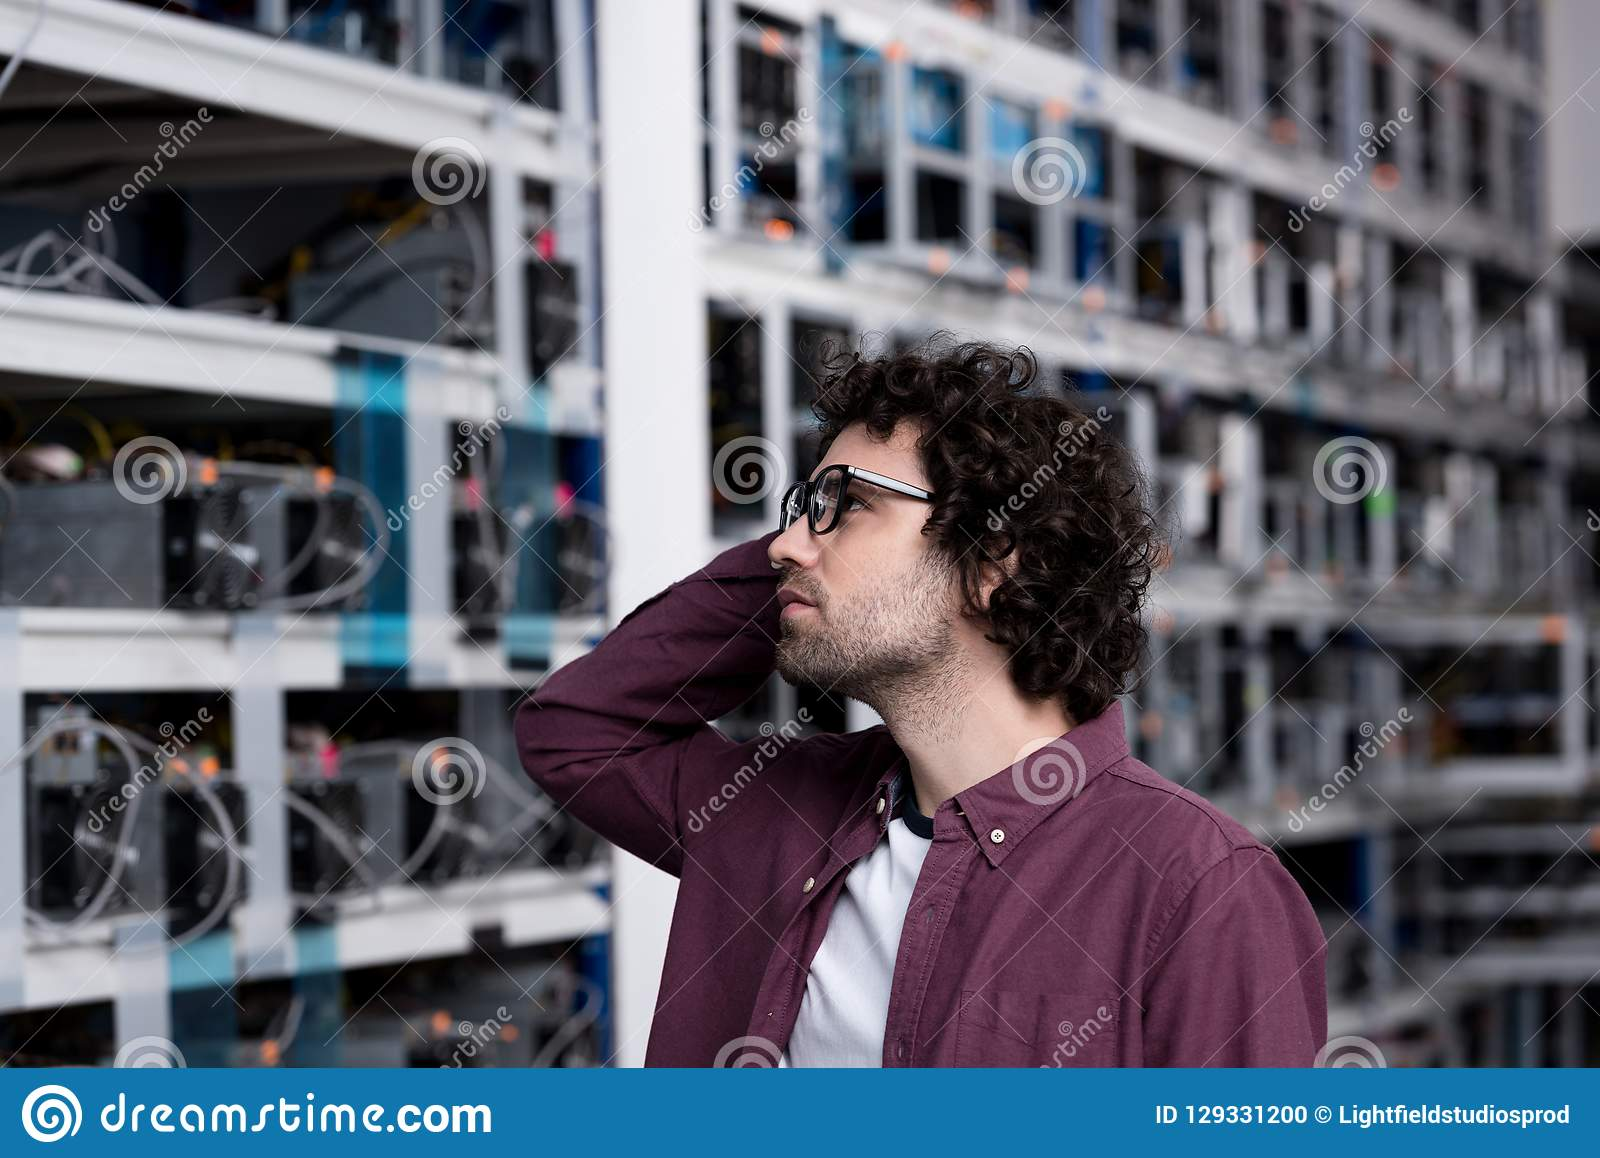 Thoughtful young computer engineer looking at cryptocurrency mining farm stock photo